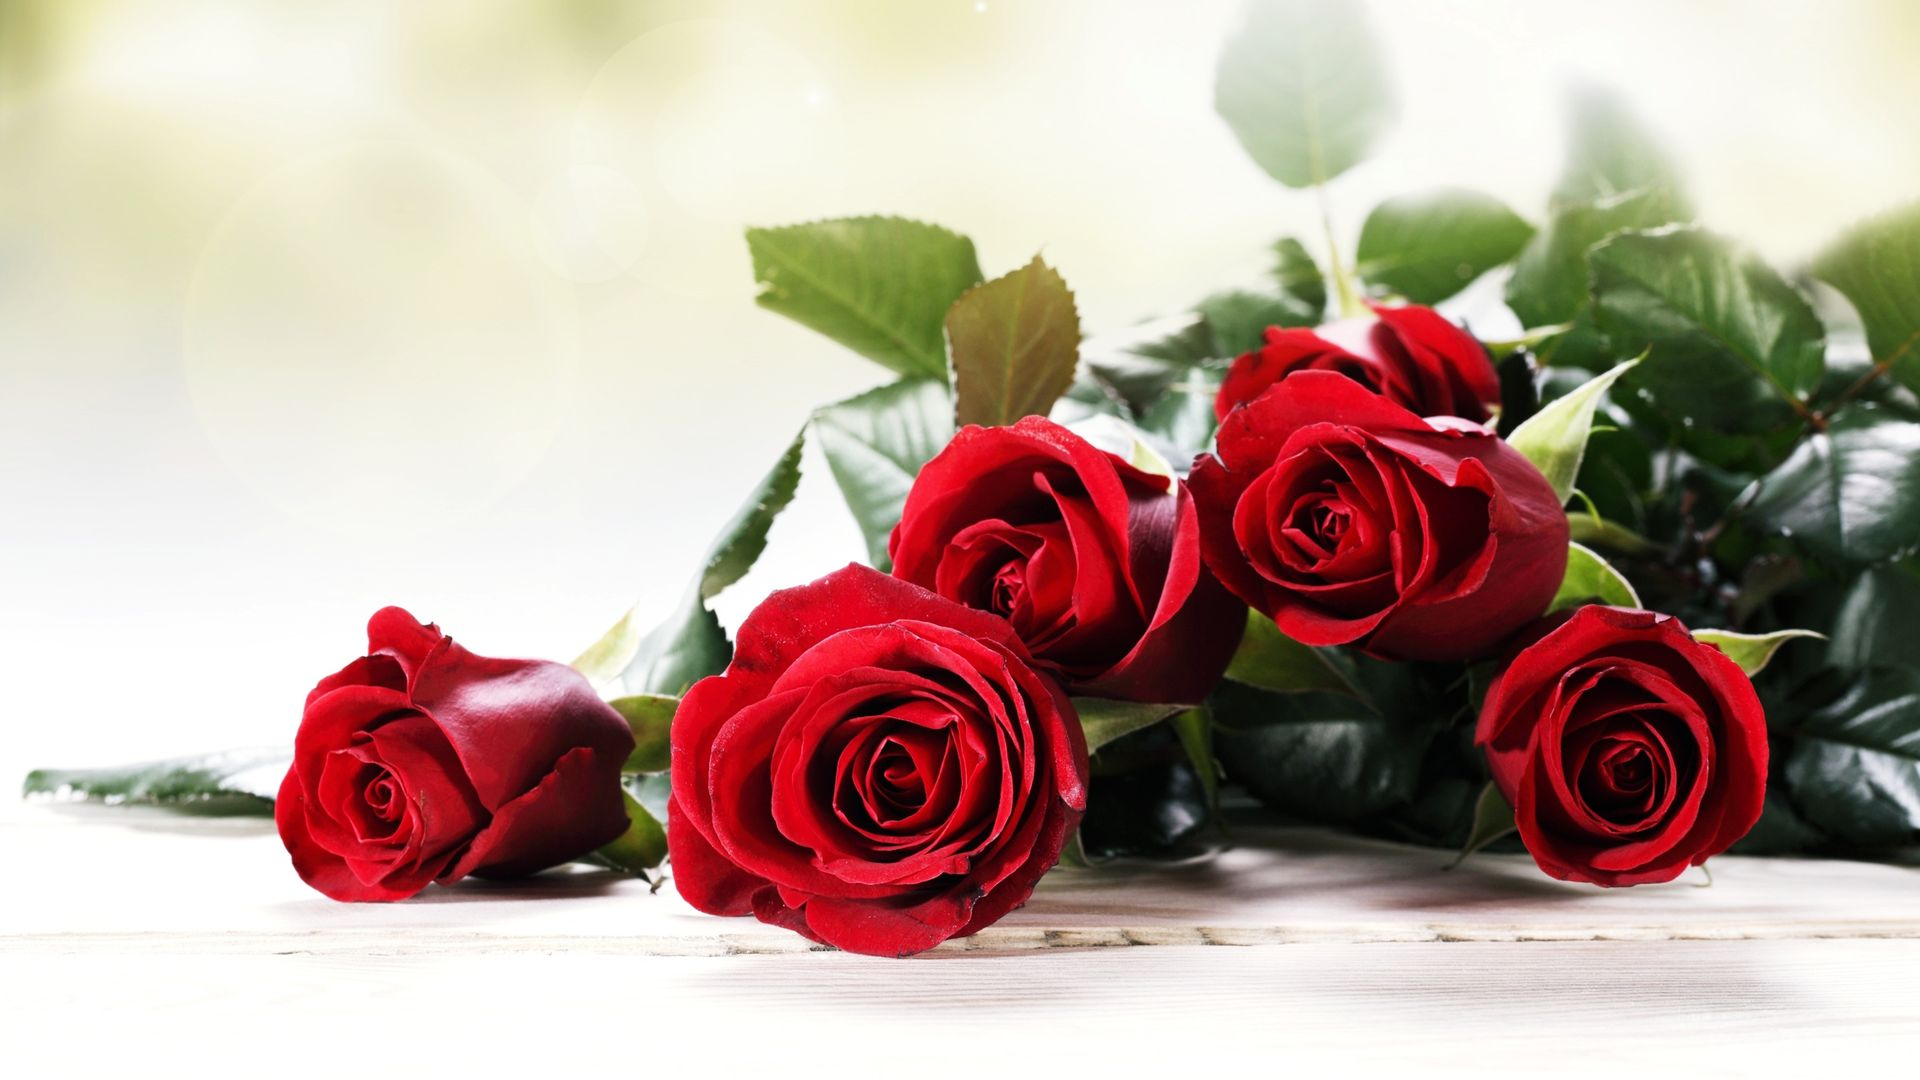 Rose With Background Wallpaper Download Free Mewallpaper